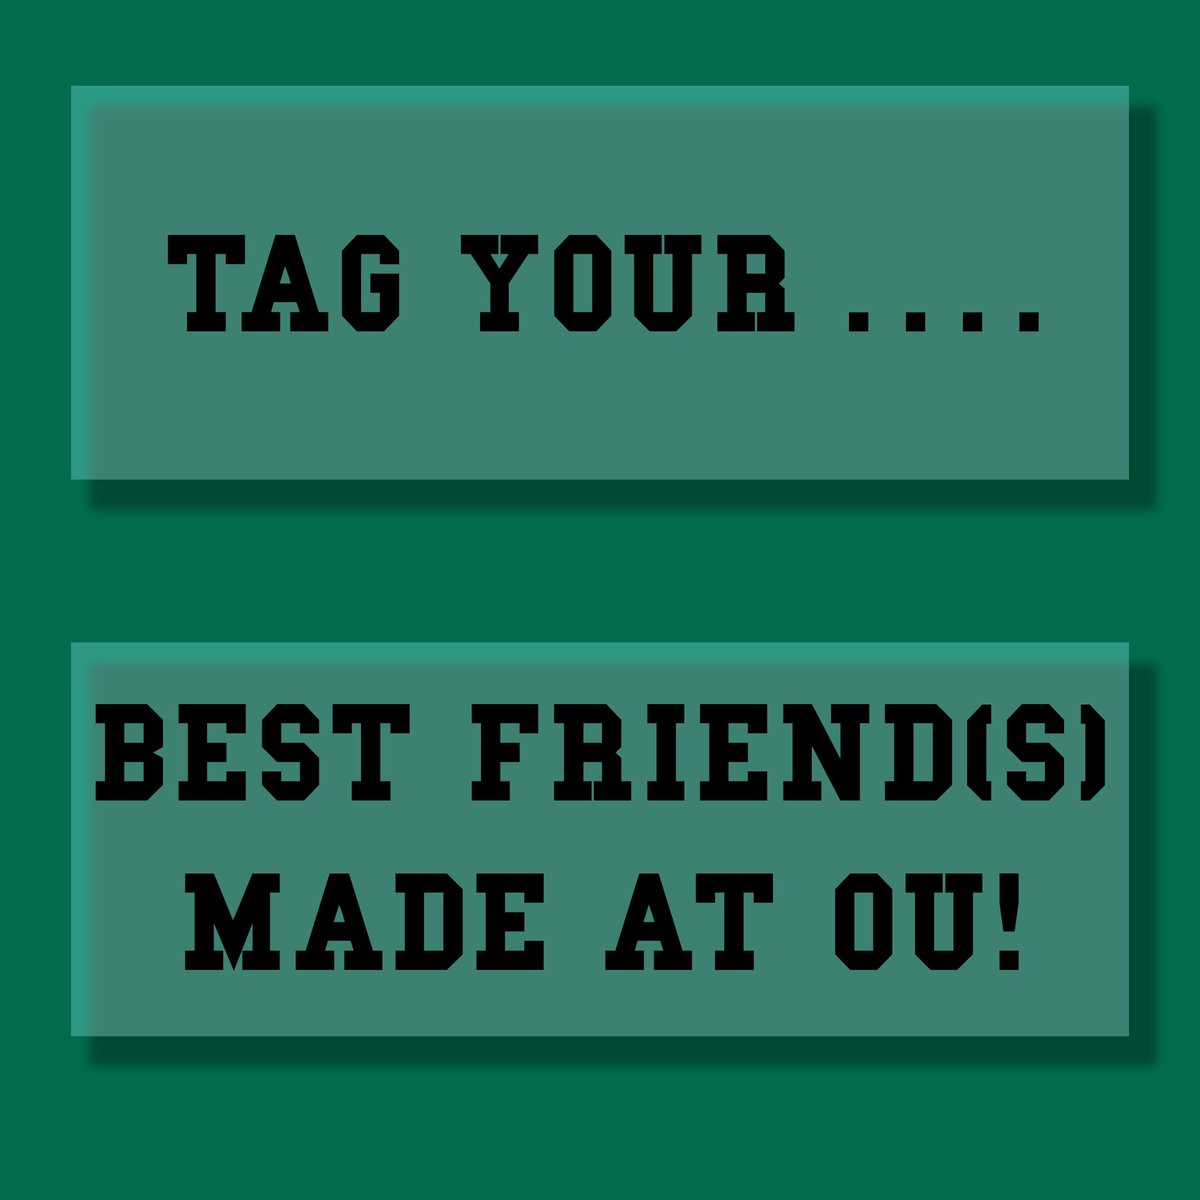 We all know someone who impacted us at OU. Tag them below! https://t.co/0lvJ975LDz